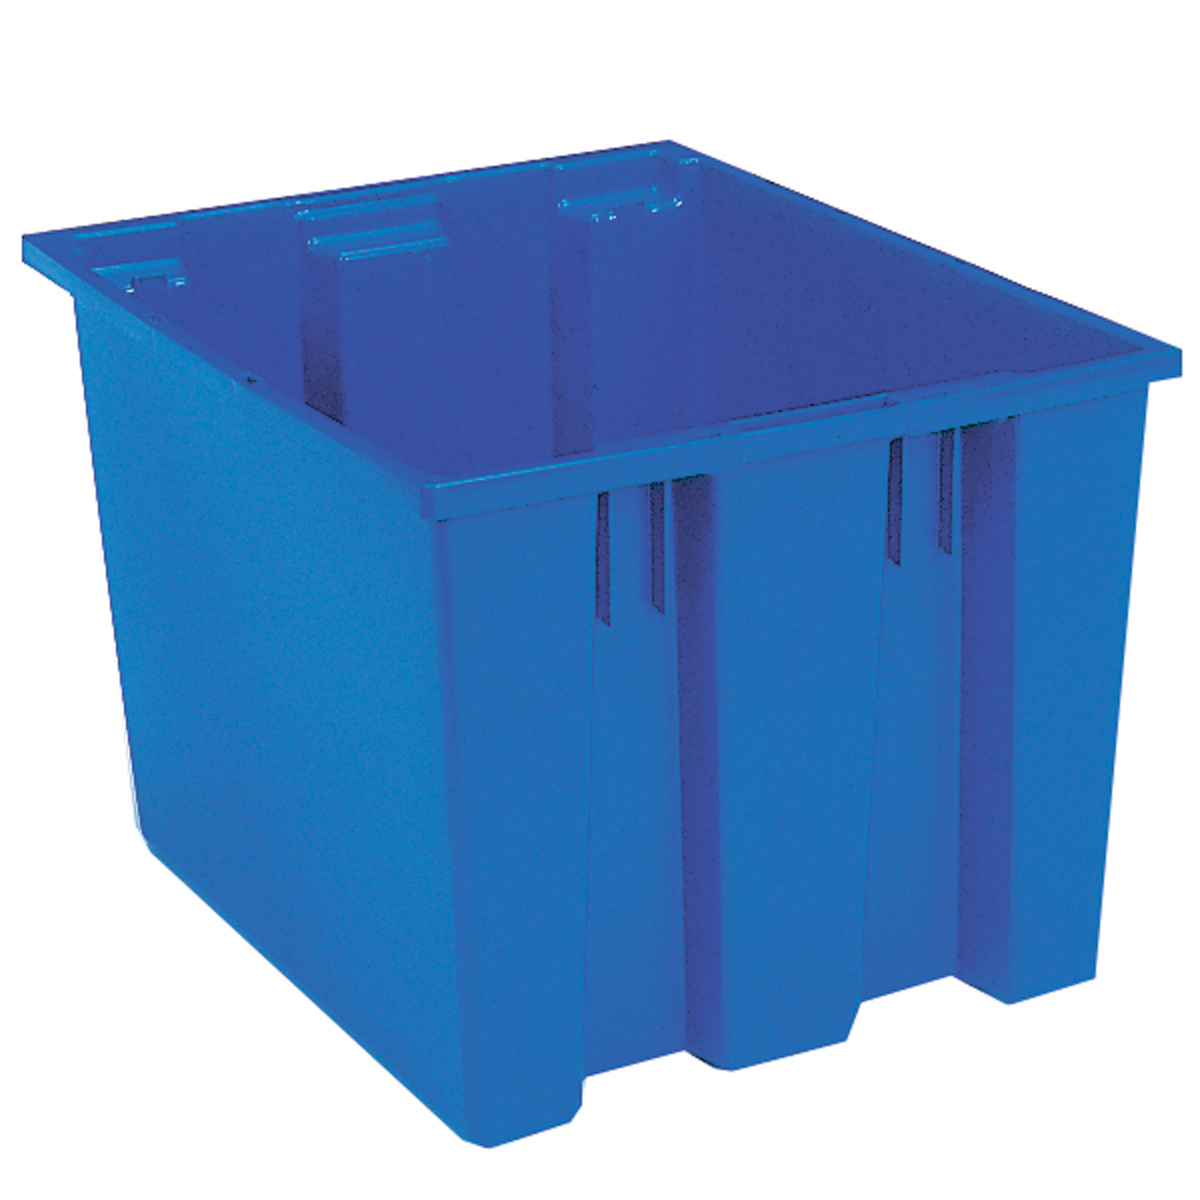 Nest & Stack Tote 19-1/2 x 15-1/2 x 13, Blue (35195BLUE).  This item sold in carton quantities of 6.